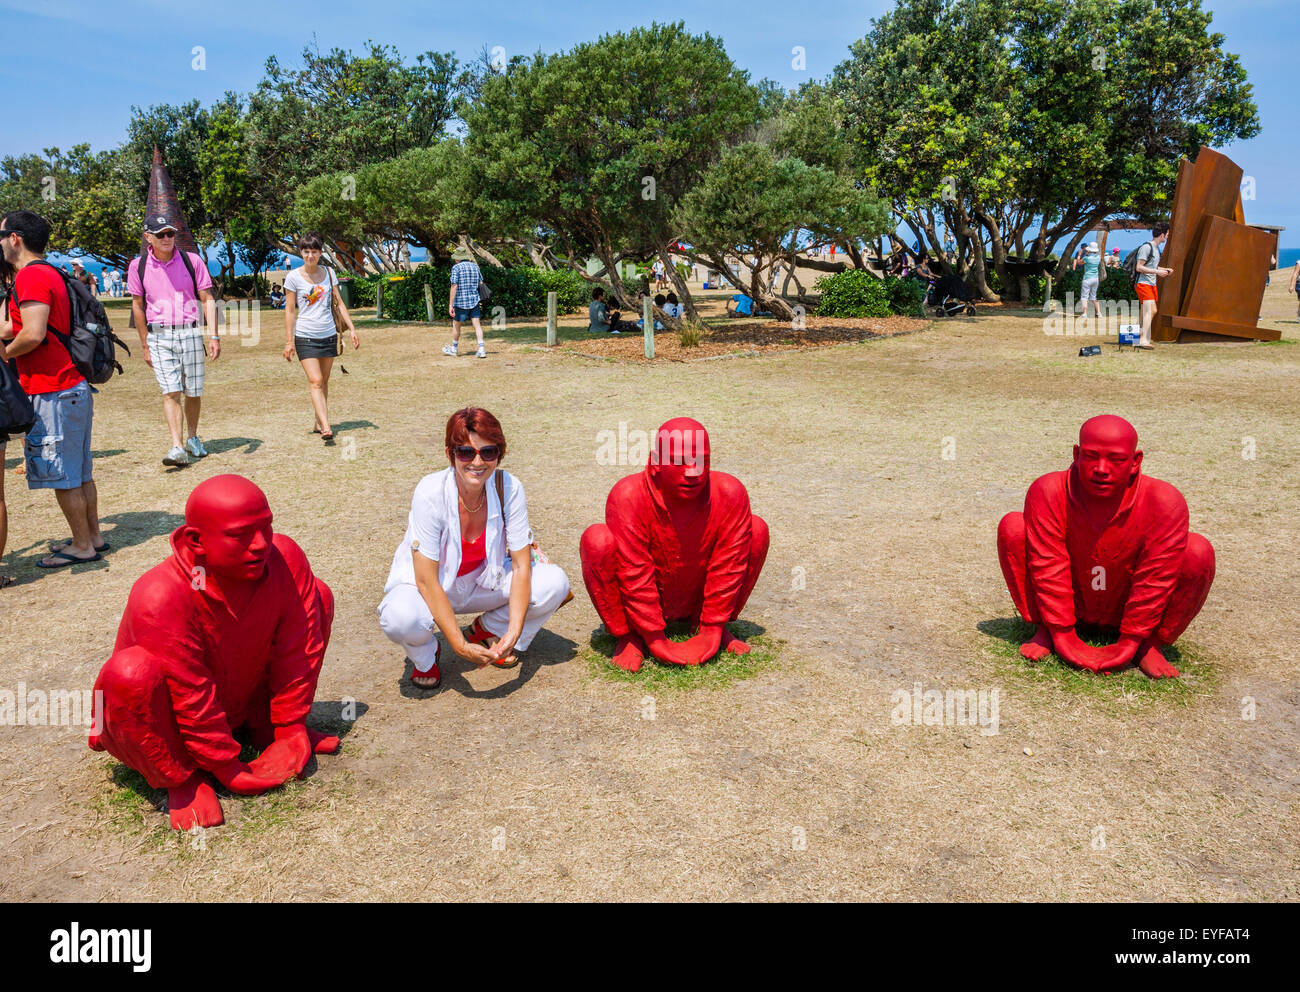 Australia, New South Wales, Sydney, Sculpture by the Sea 2011, annual outdoor art exhibition - Stock Image